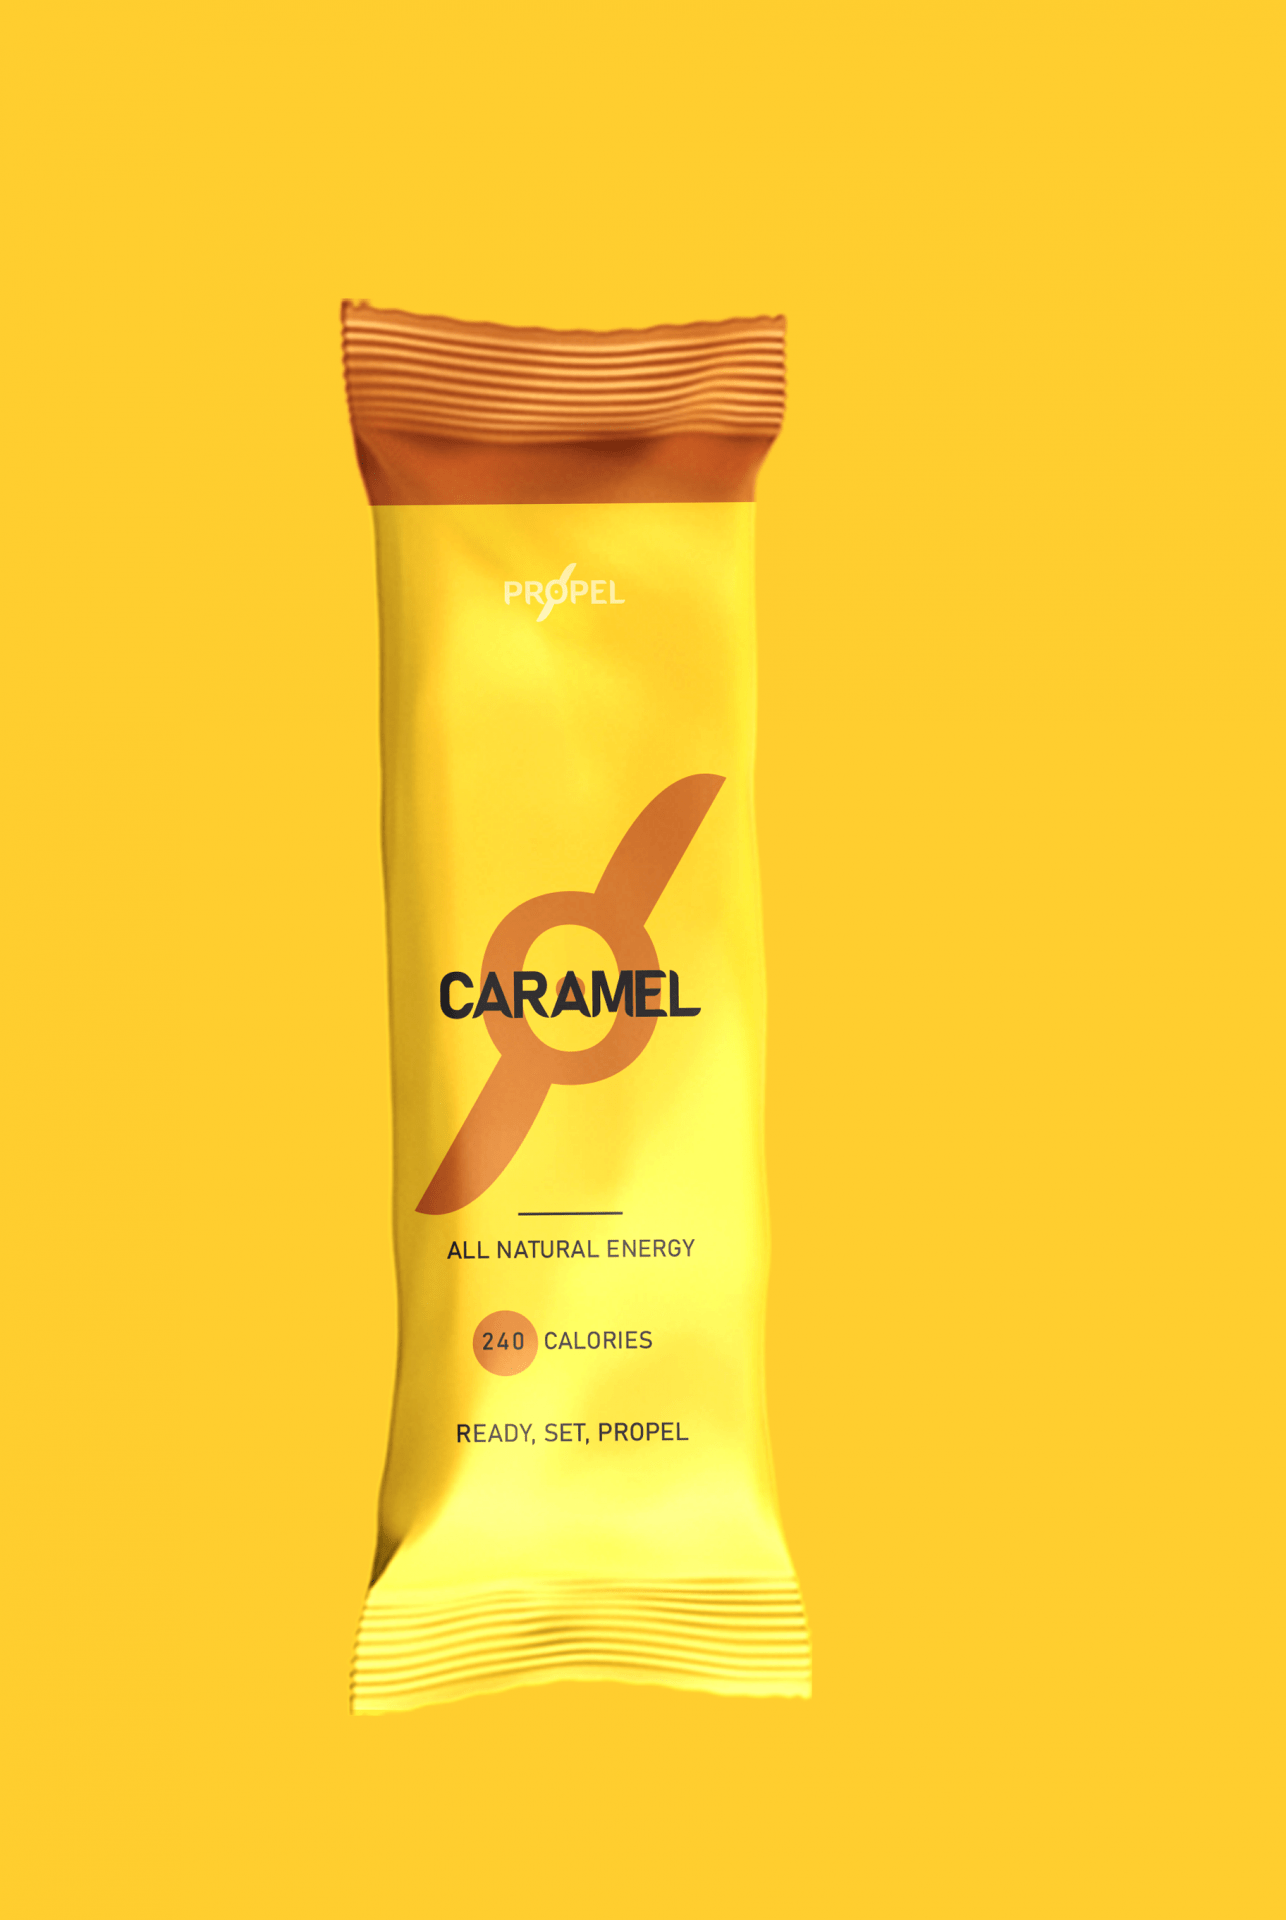 Yellow packaged caramel energy bar.